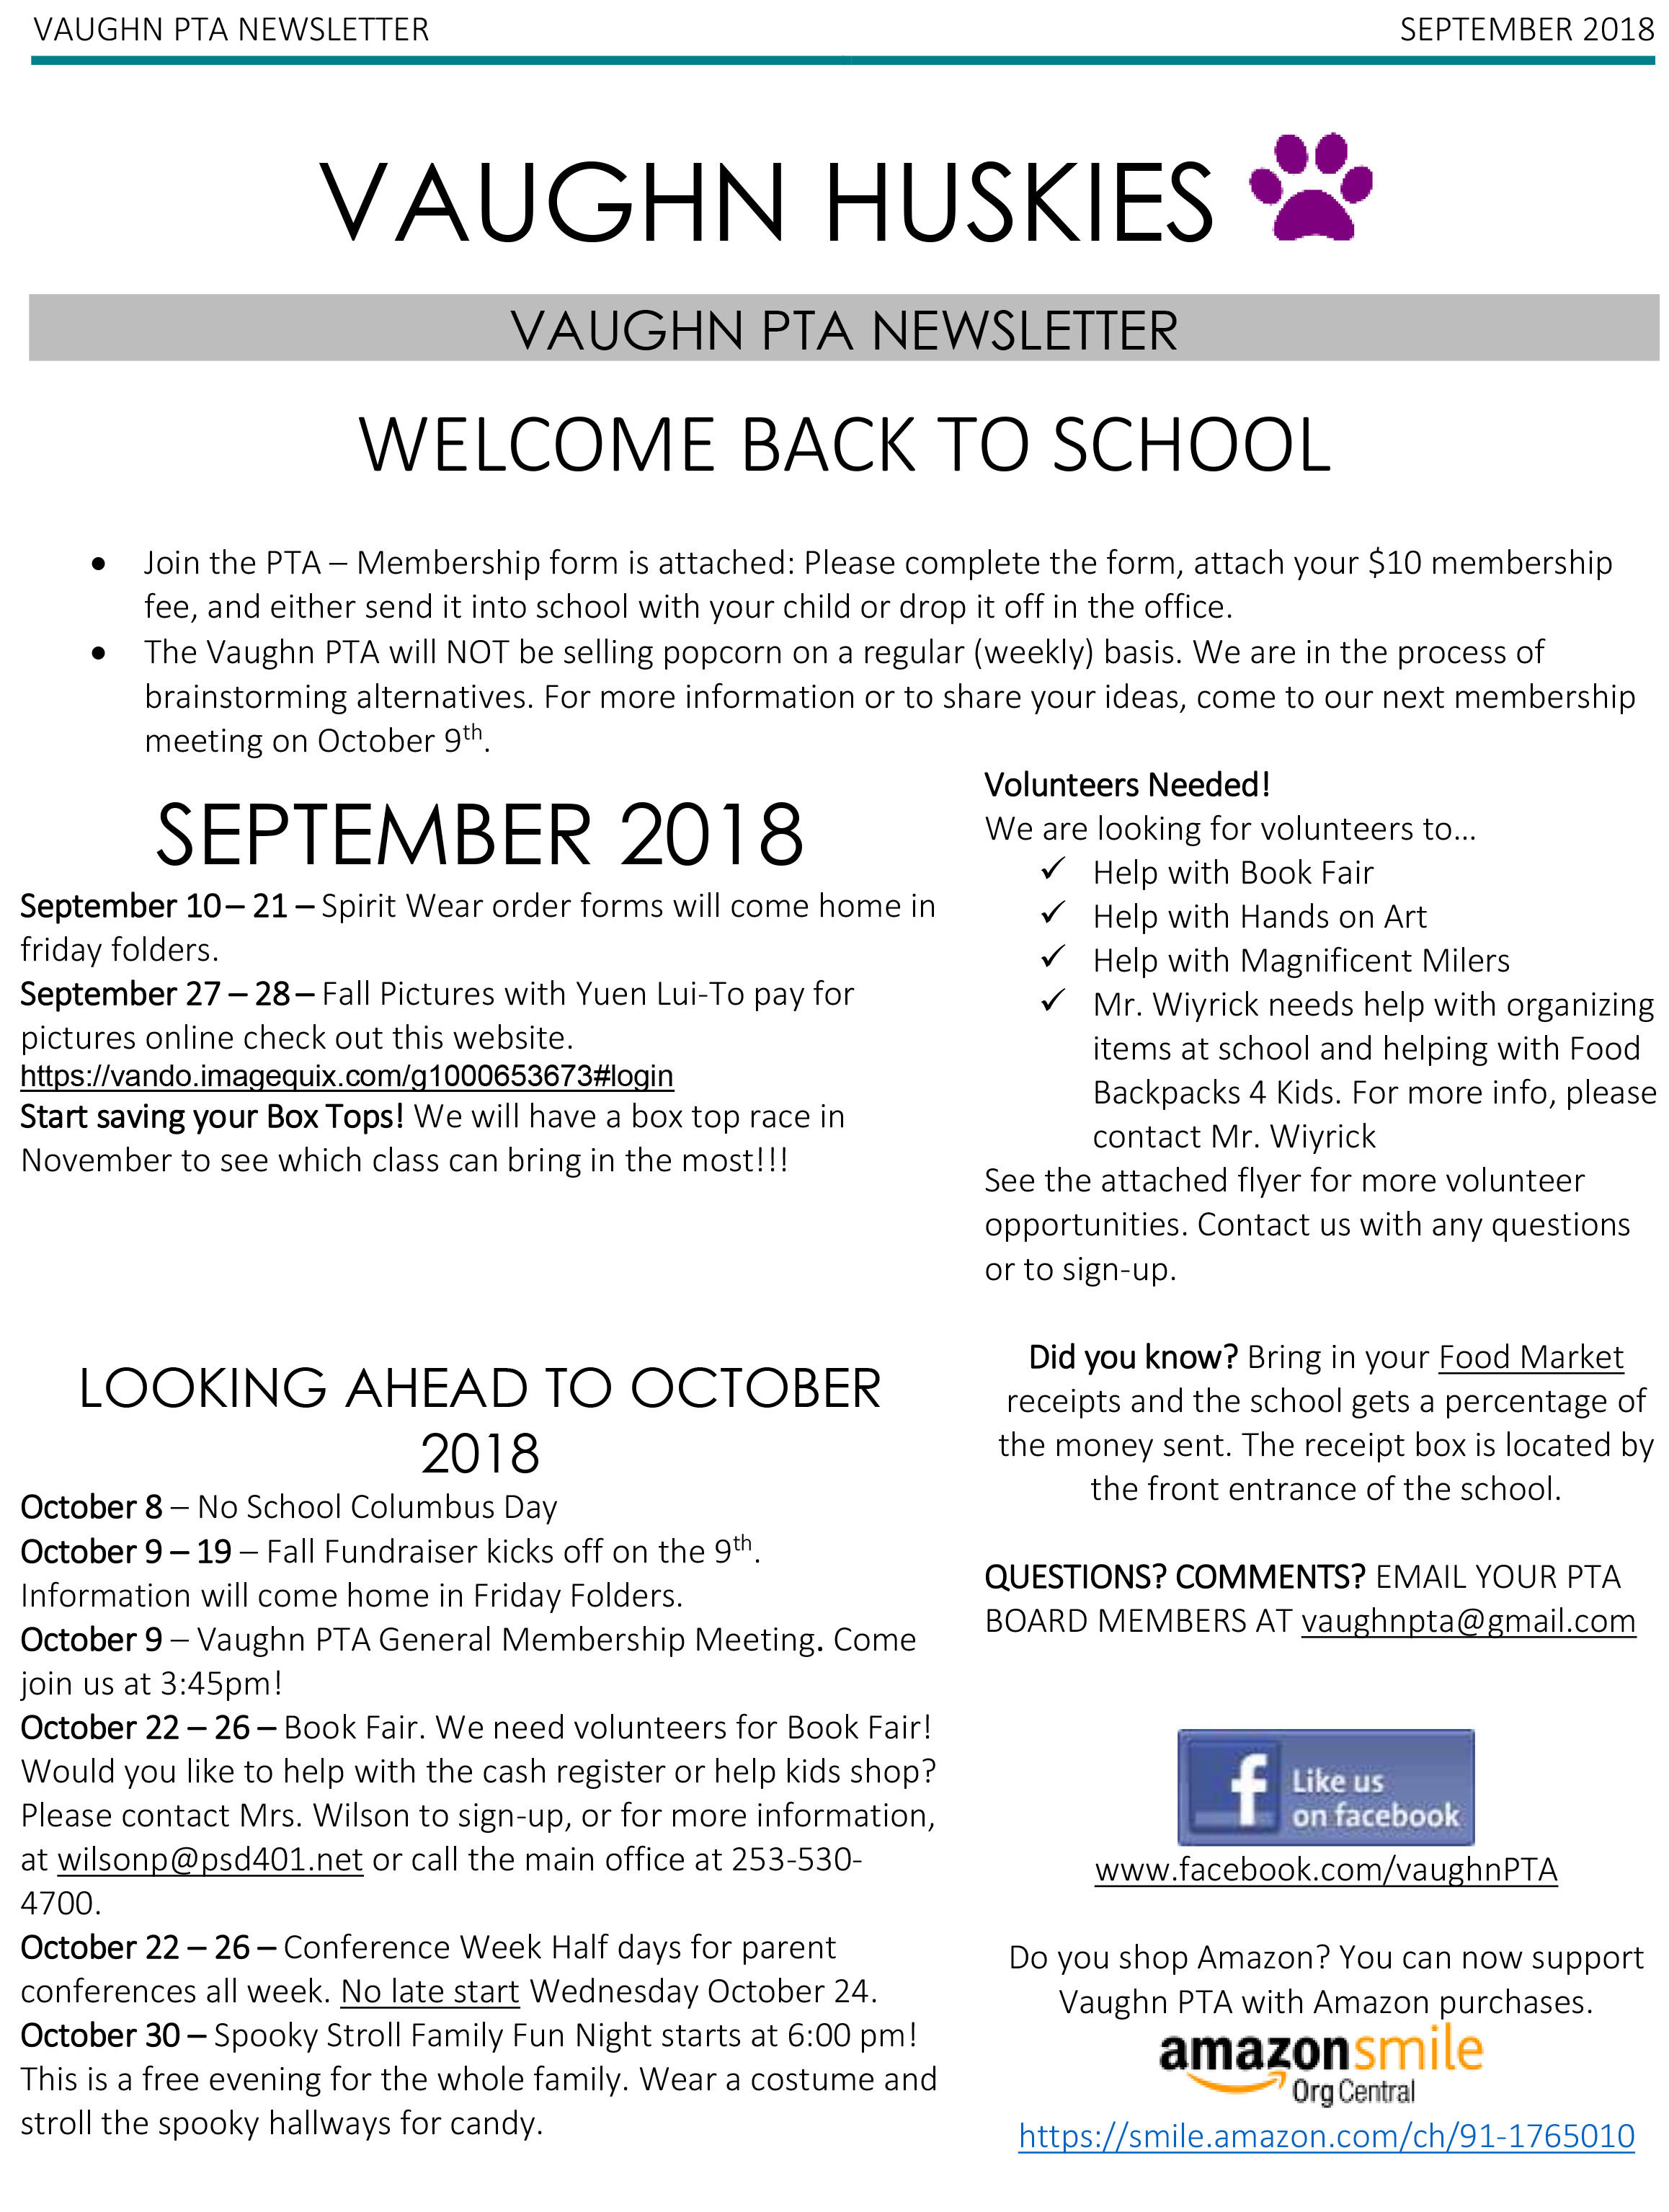 Vaughn PTA Sept Newsletter